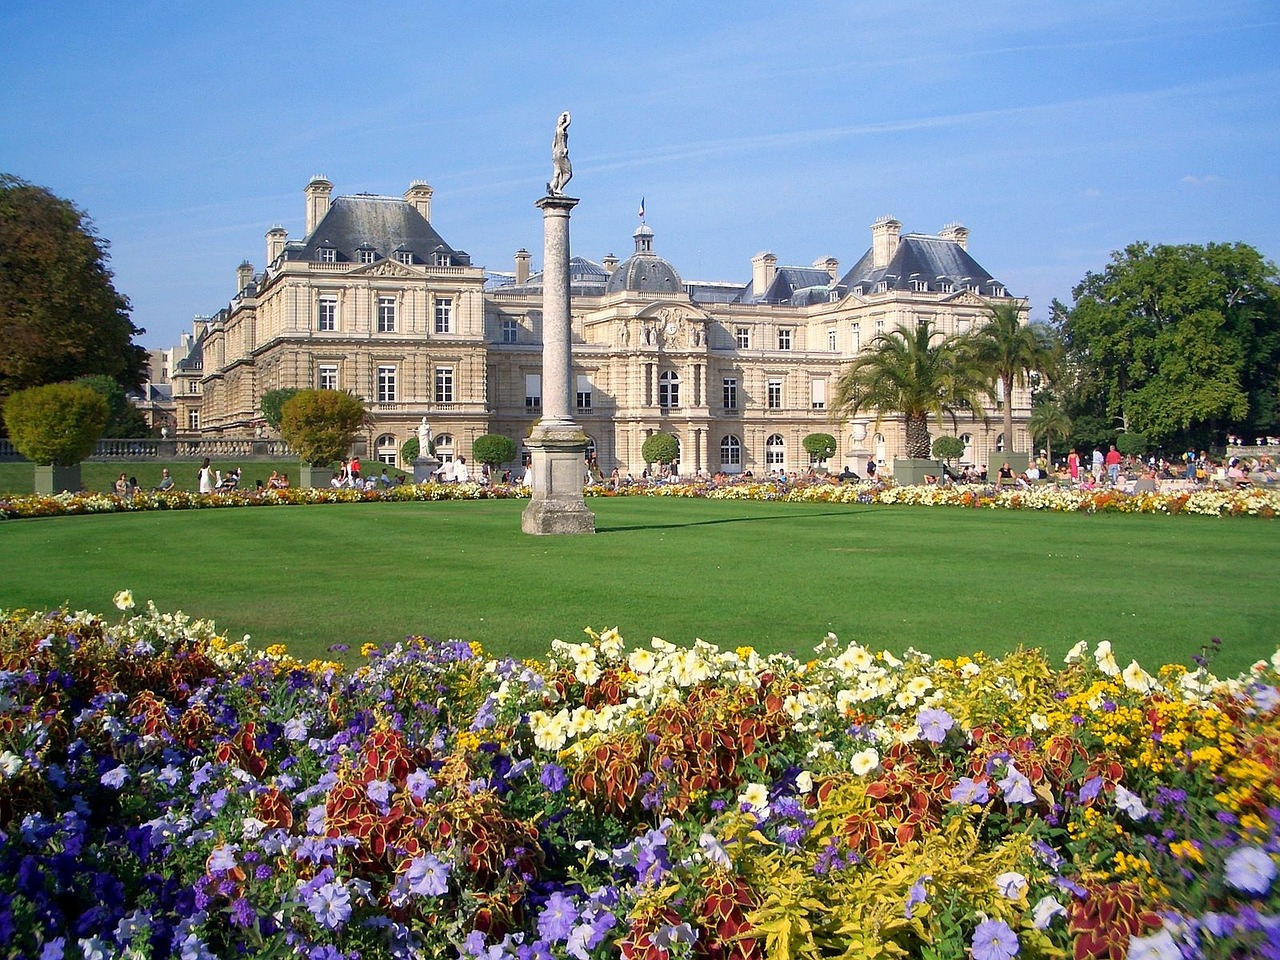 Palais de Luxembourg as the centerpiece of the Luxembourg Gardens in Paris